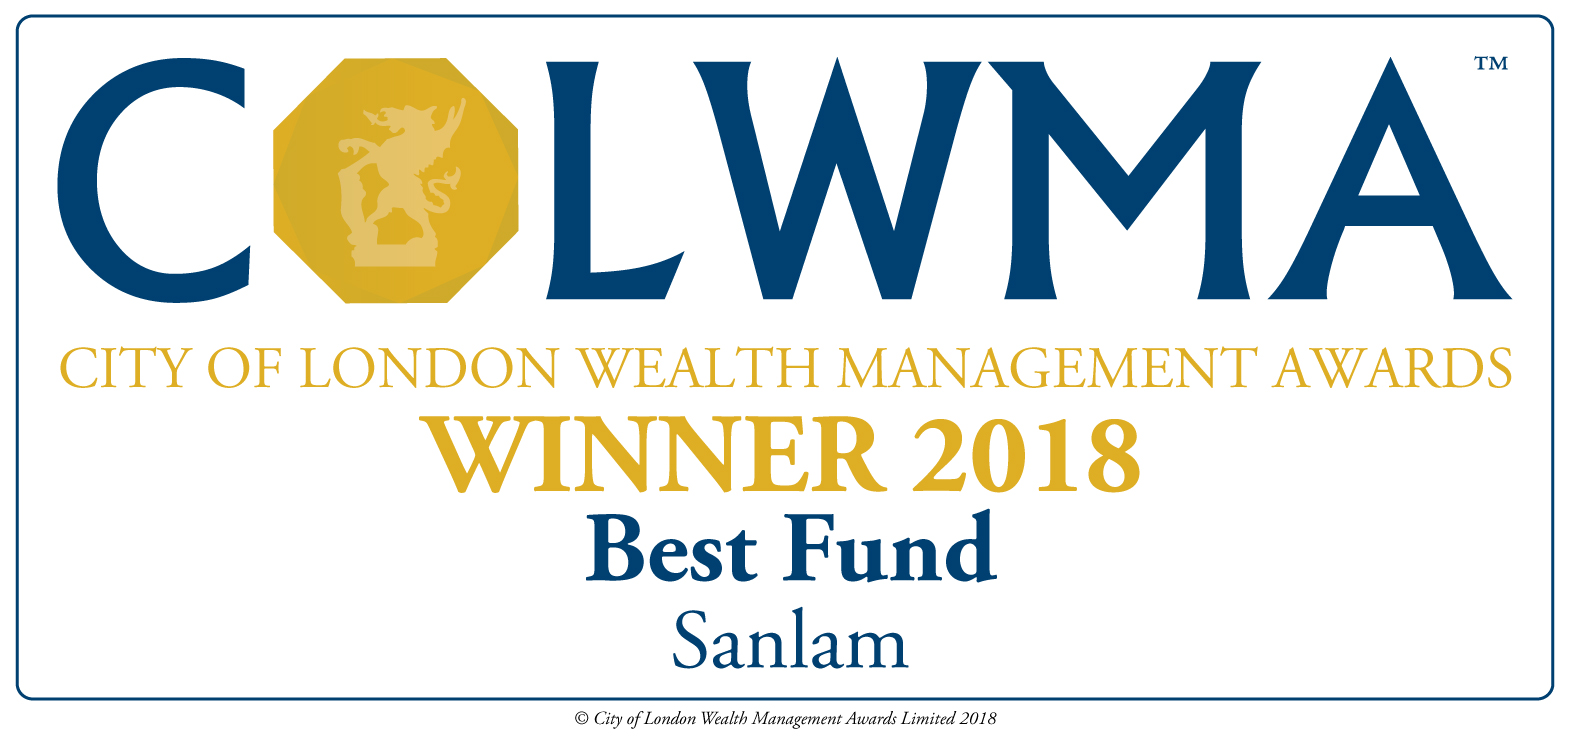 City of London Wealth Management Awards 2018